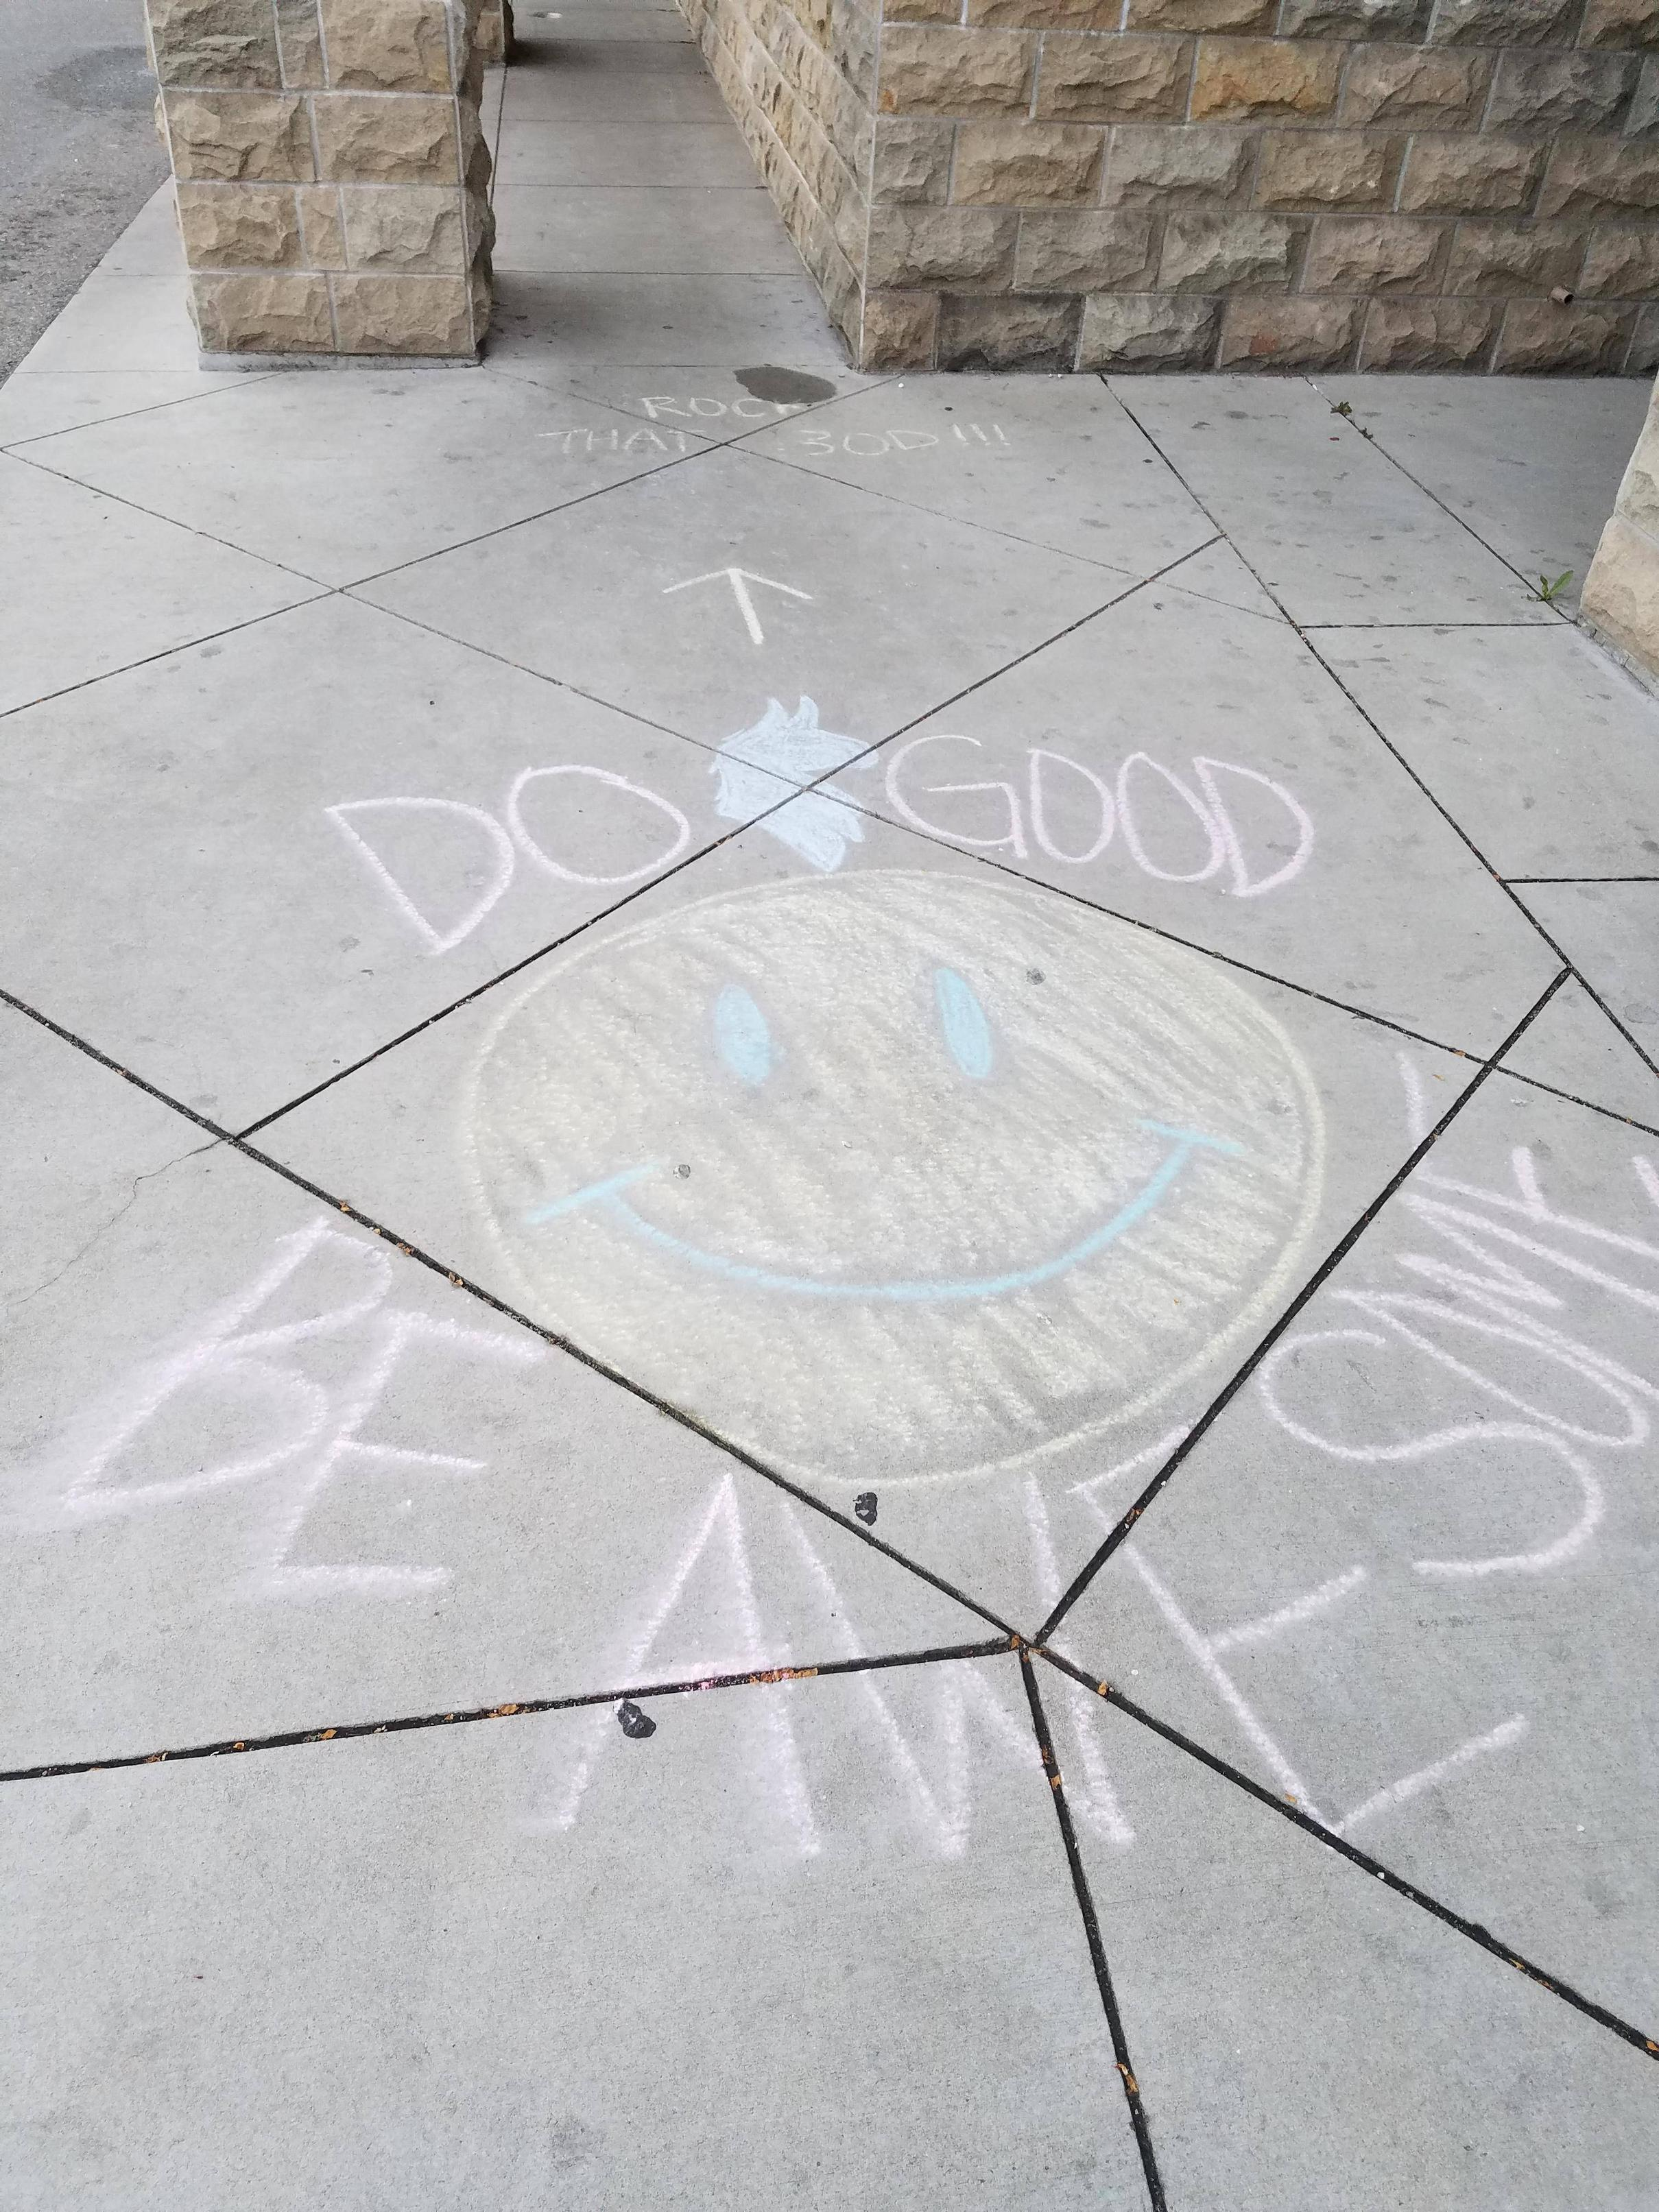 [Image] On my way to the gym and saw this in the sidewalk